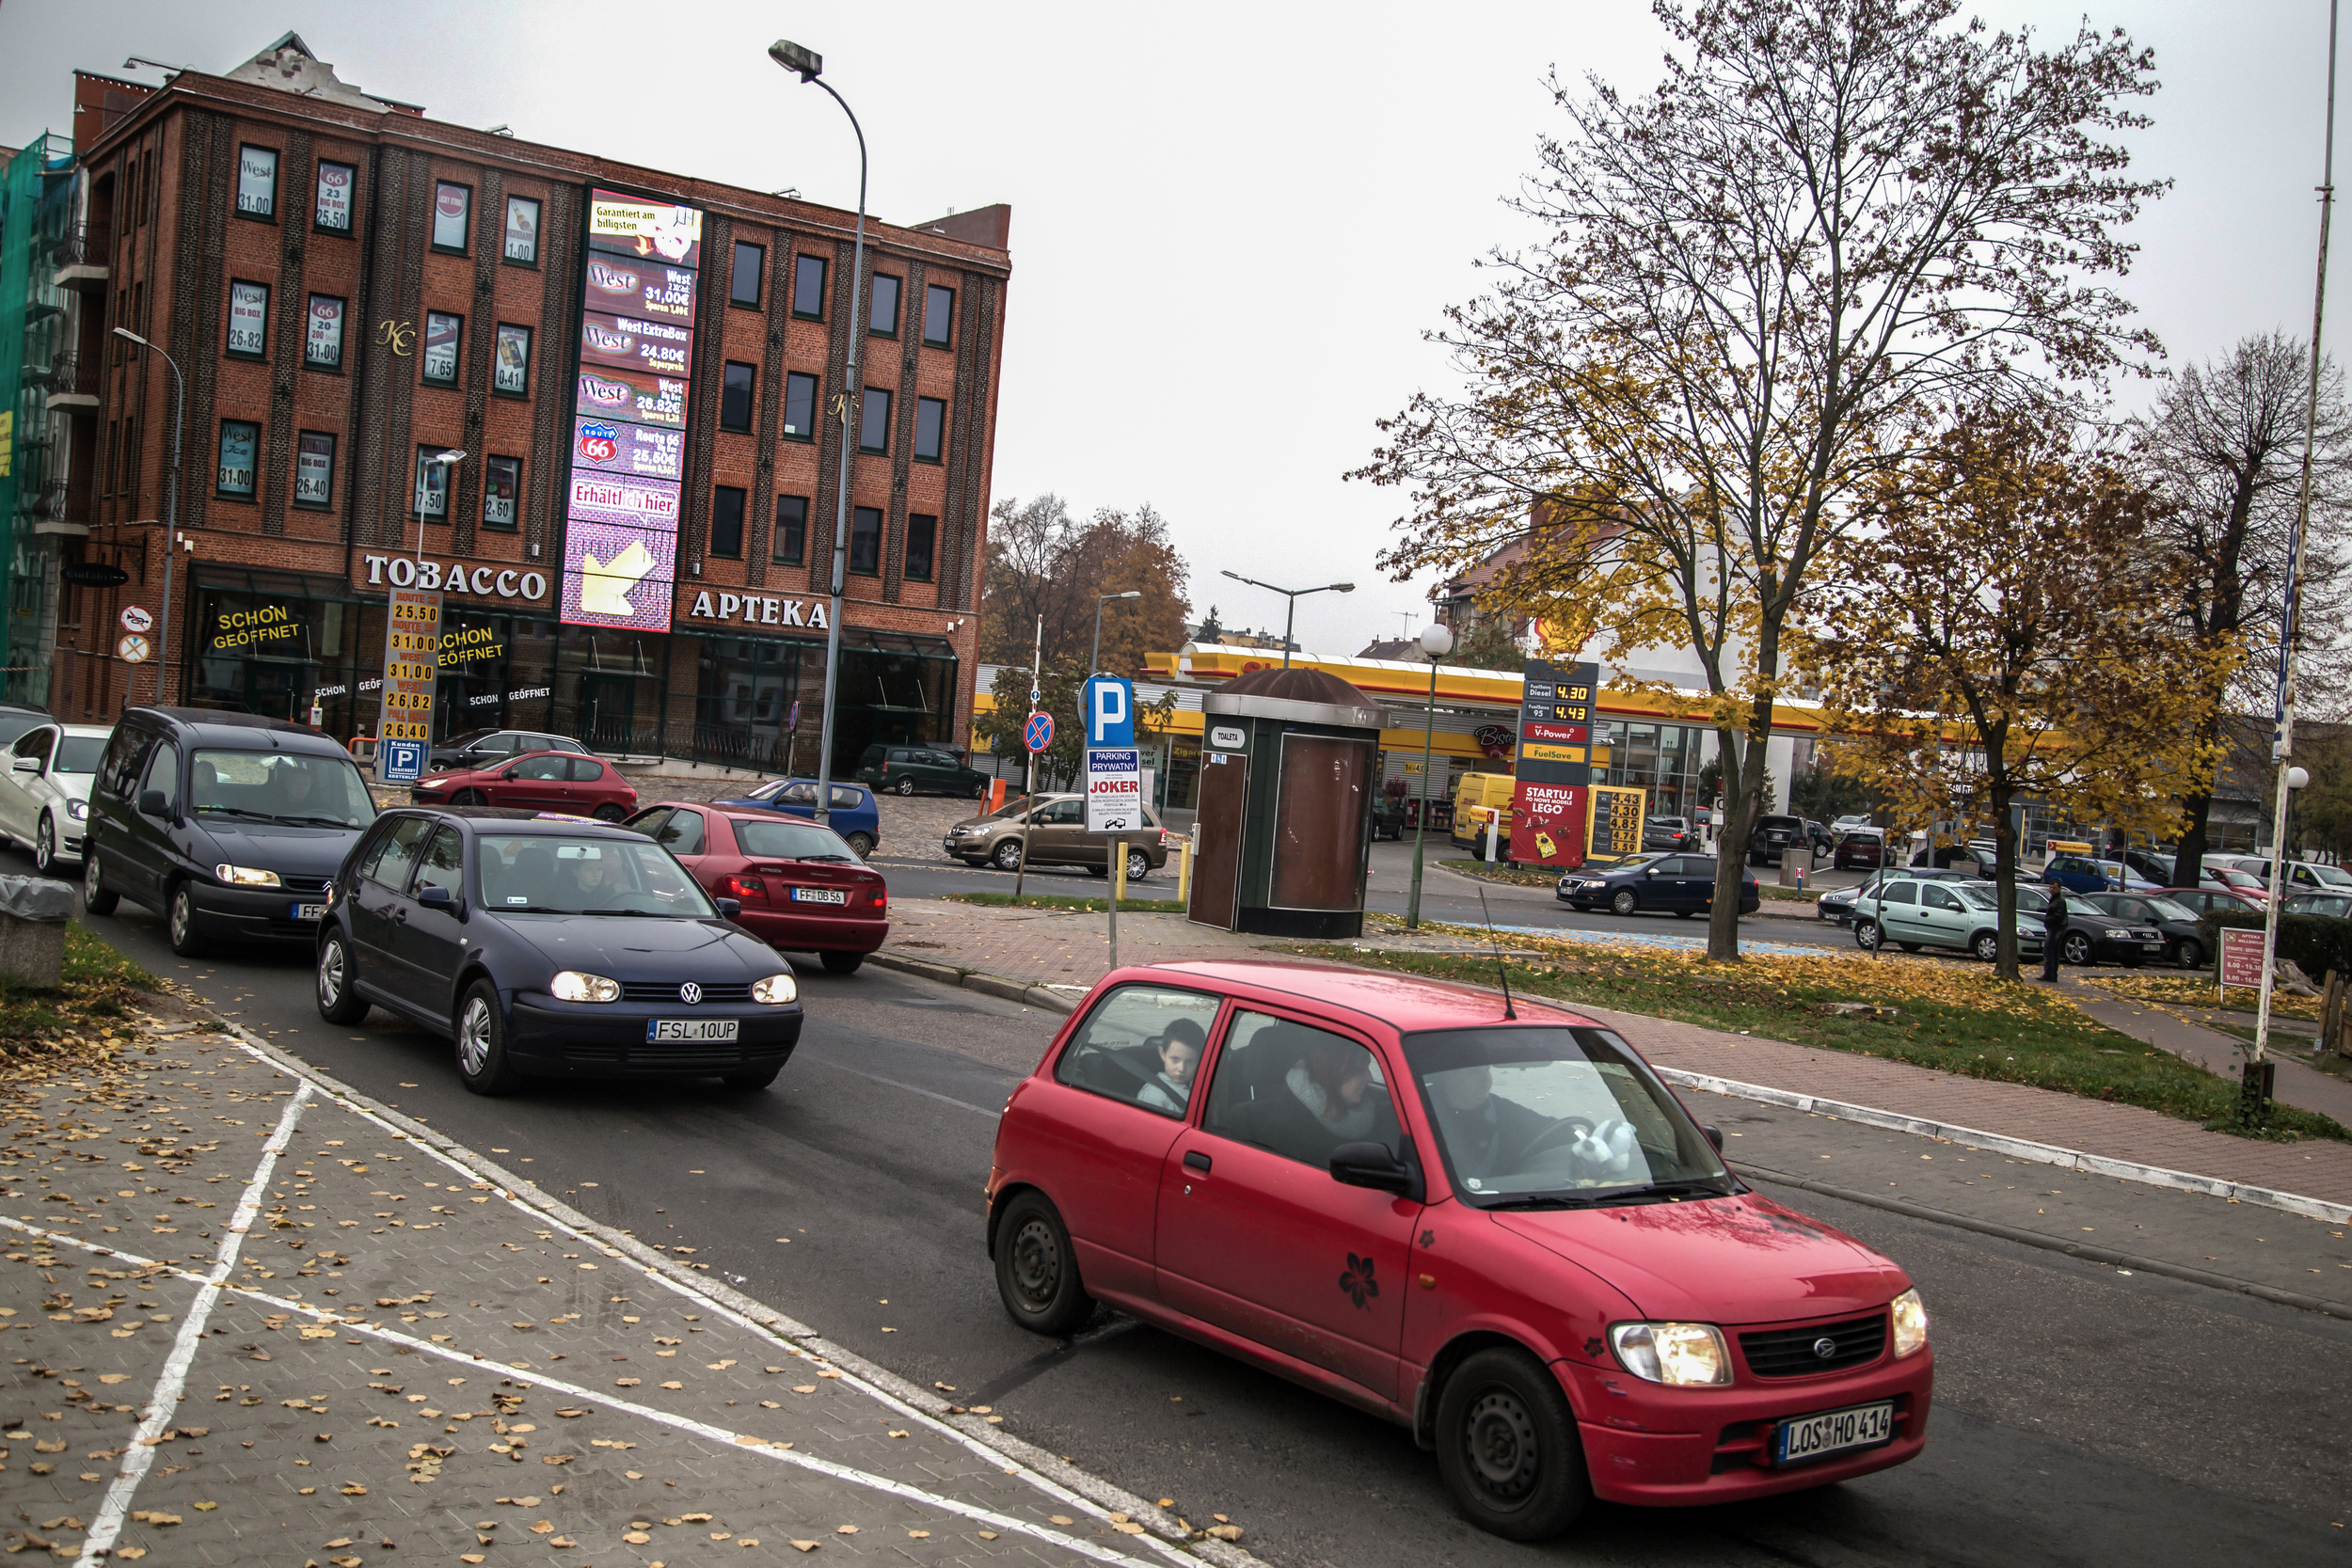 Cars with German and Polish license plates wait in Slubice traffic to cross the Oder bridge to Frankfurt. Many come to Poland to stock up on cheap cigarettes and discount fuel.